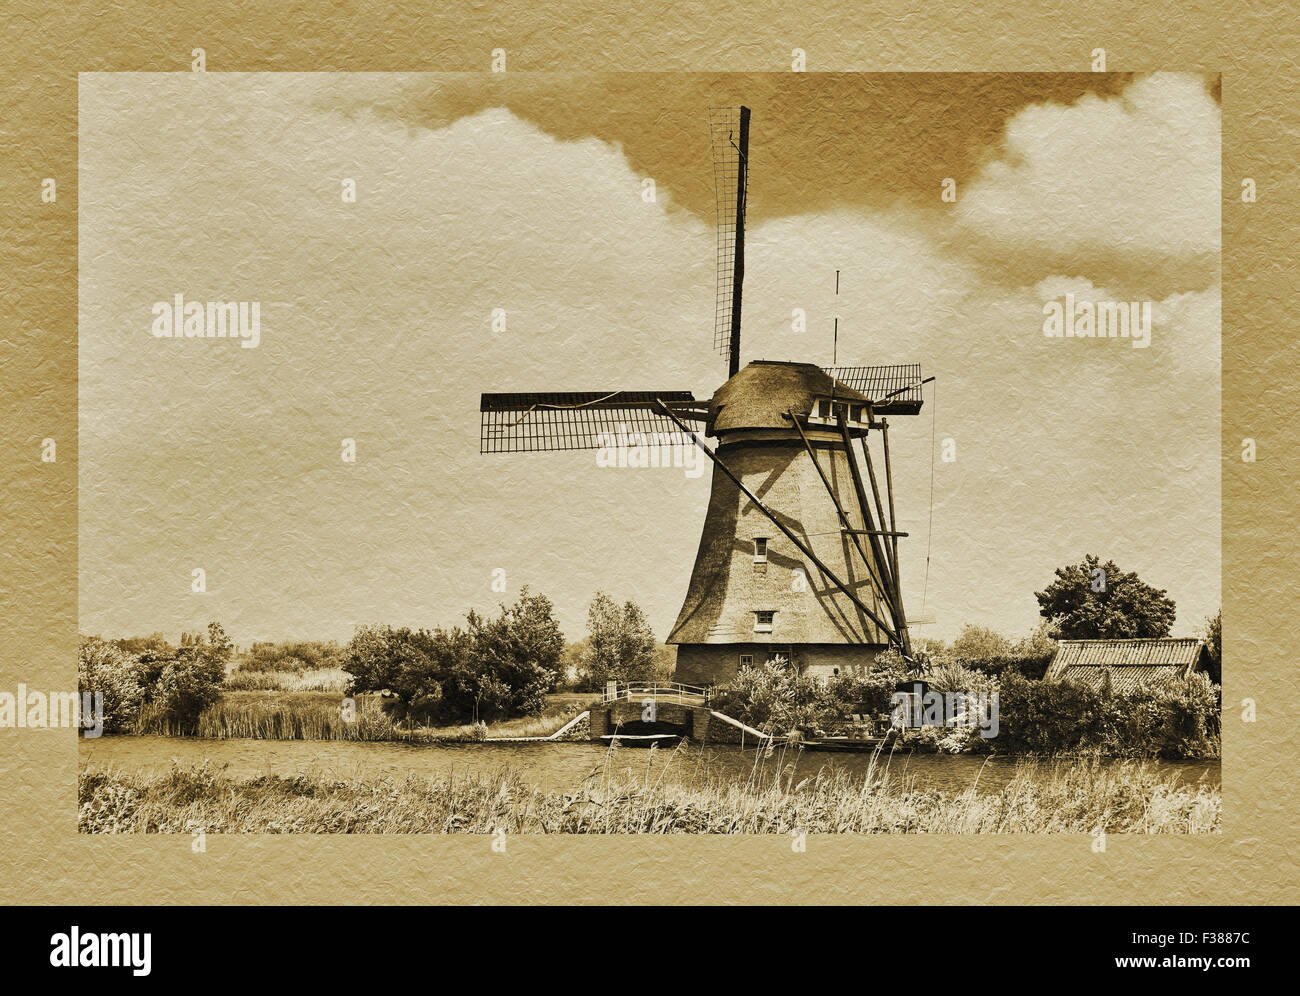 The windmills of Kinderdijk, South Holland, Netherlands, Europe - Stock Image